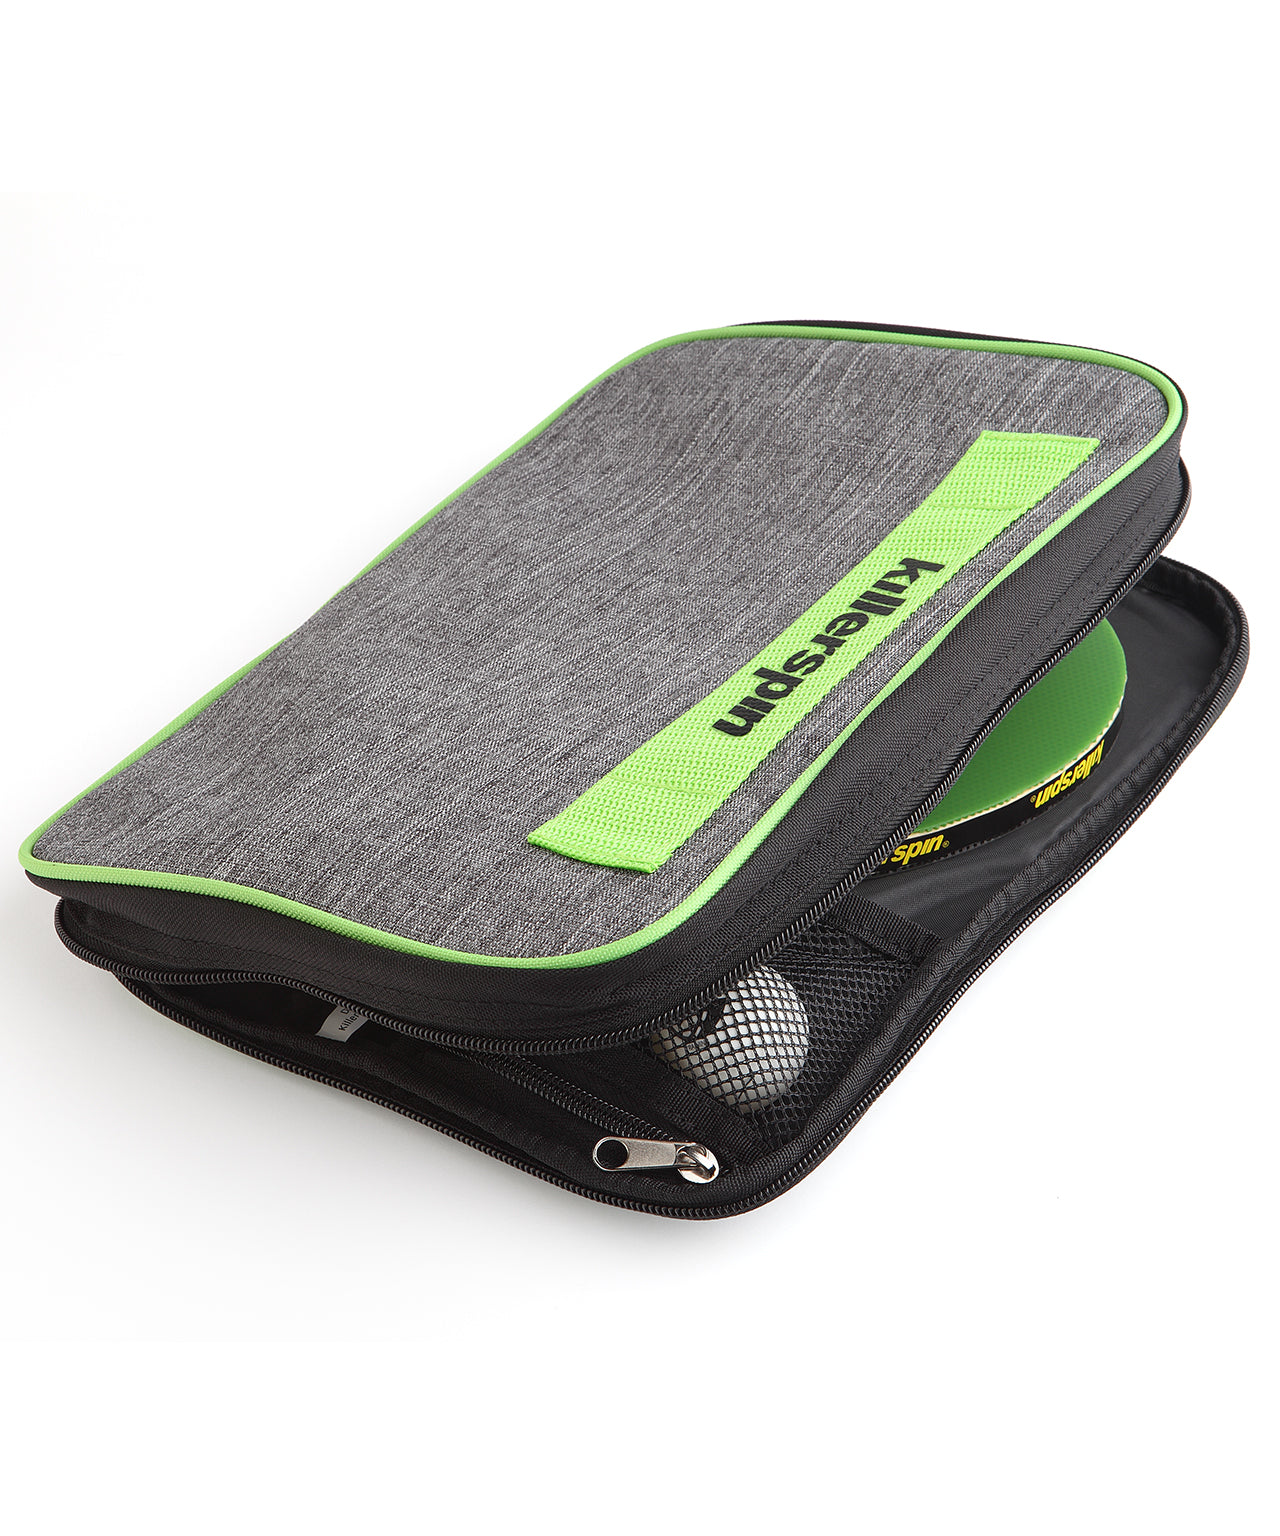 Killerspin Optima Ping Pong Paddle Case - Top